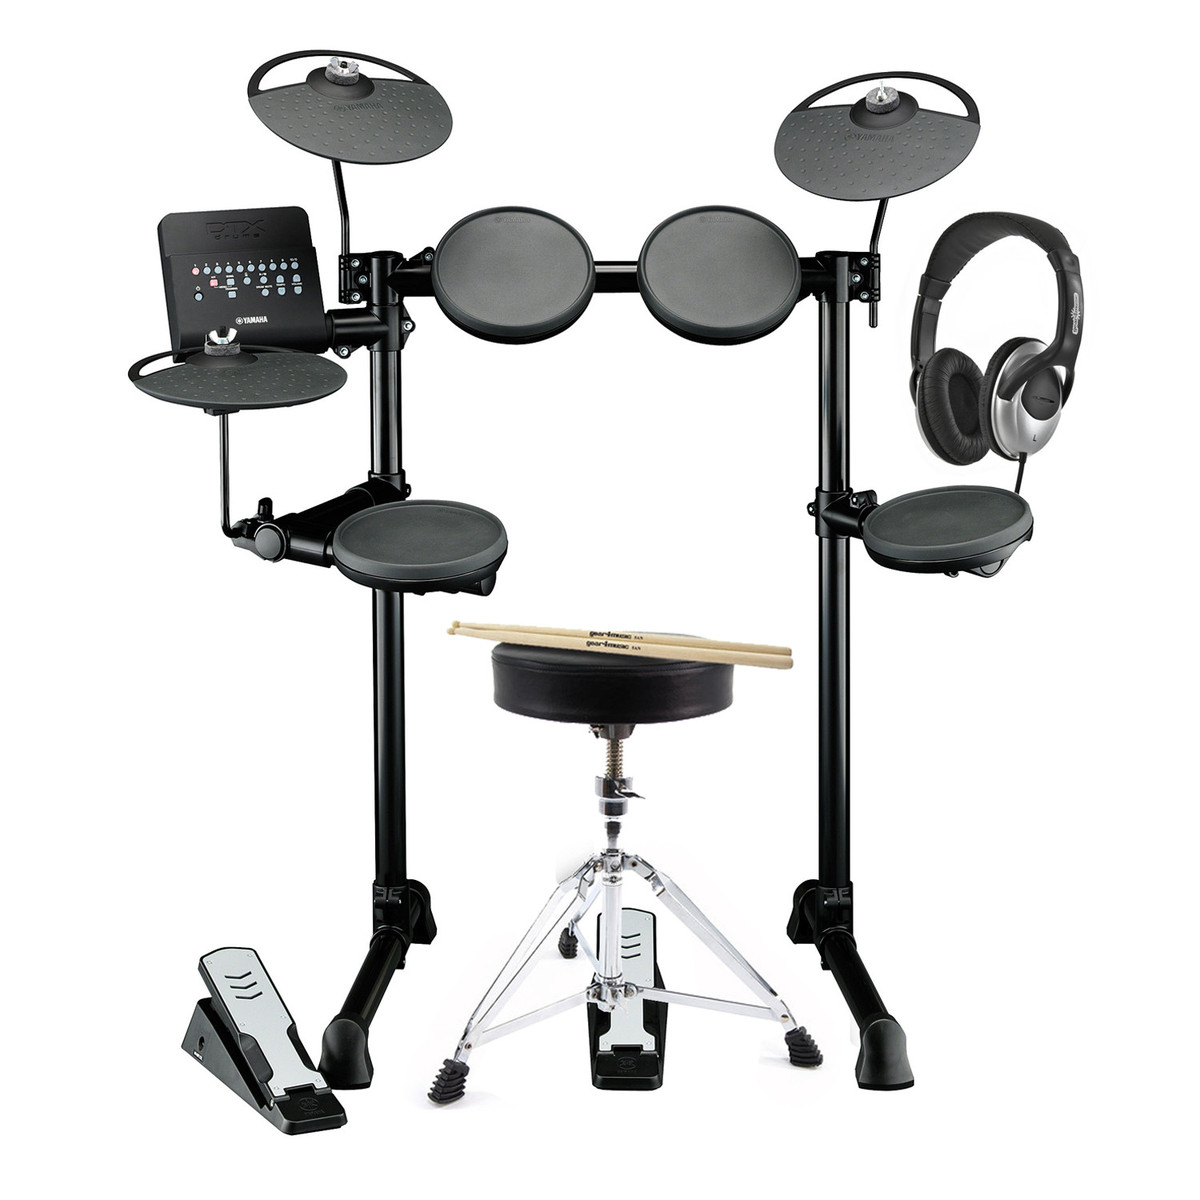 Yamaha dtx400k electronic drum kit with headphones stool for Yamaha electronic drum kit for sale